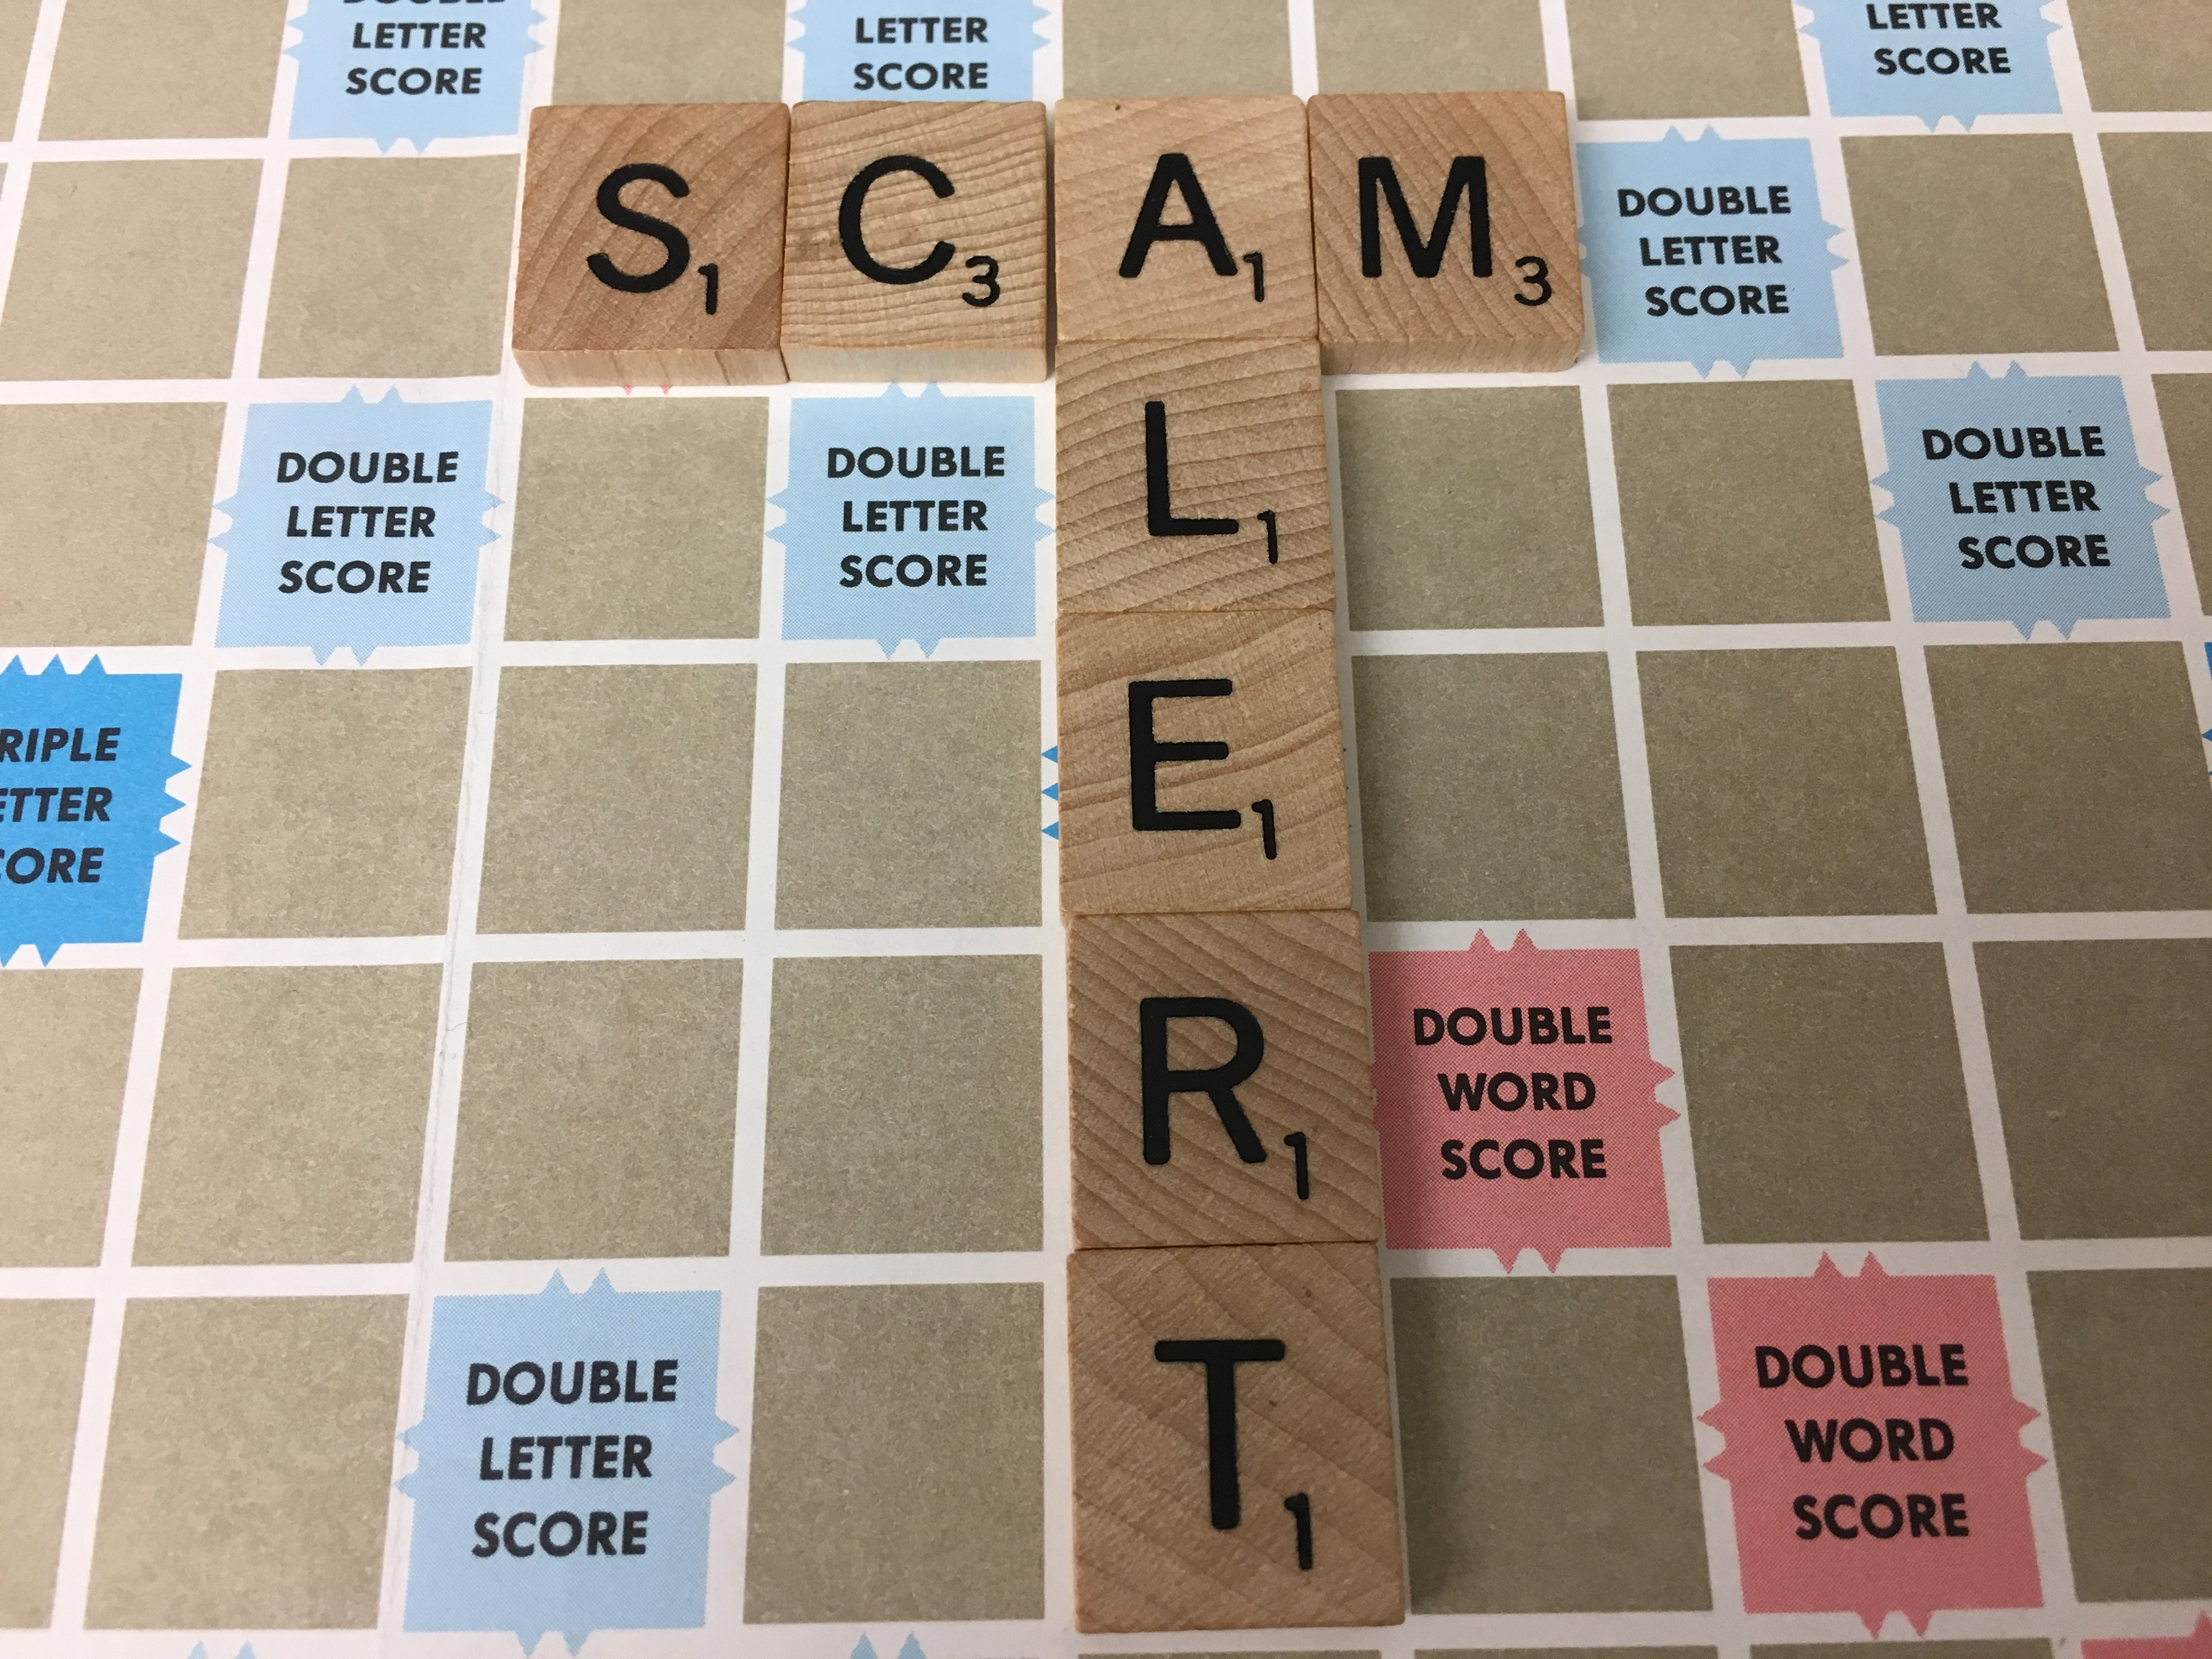 Scam alert image spelled out in Scrabble tiles